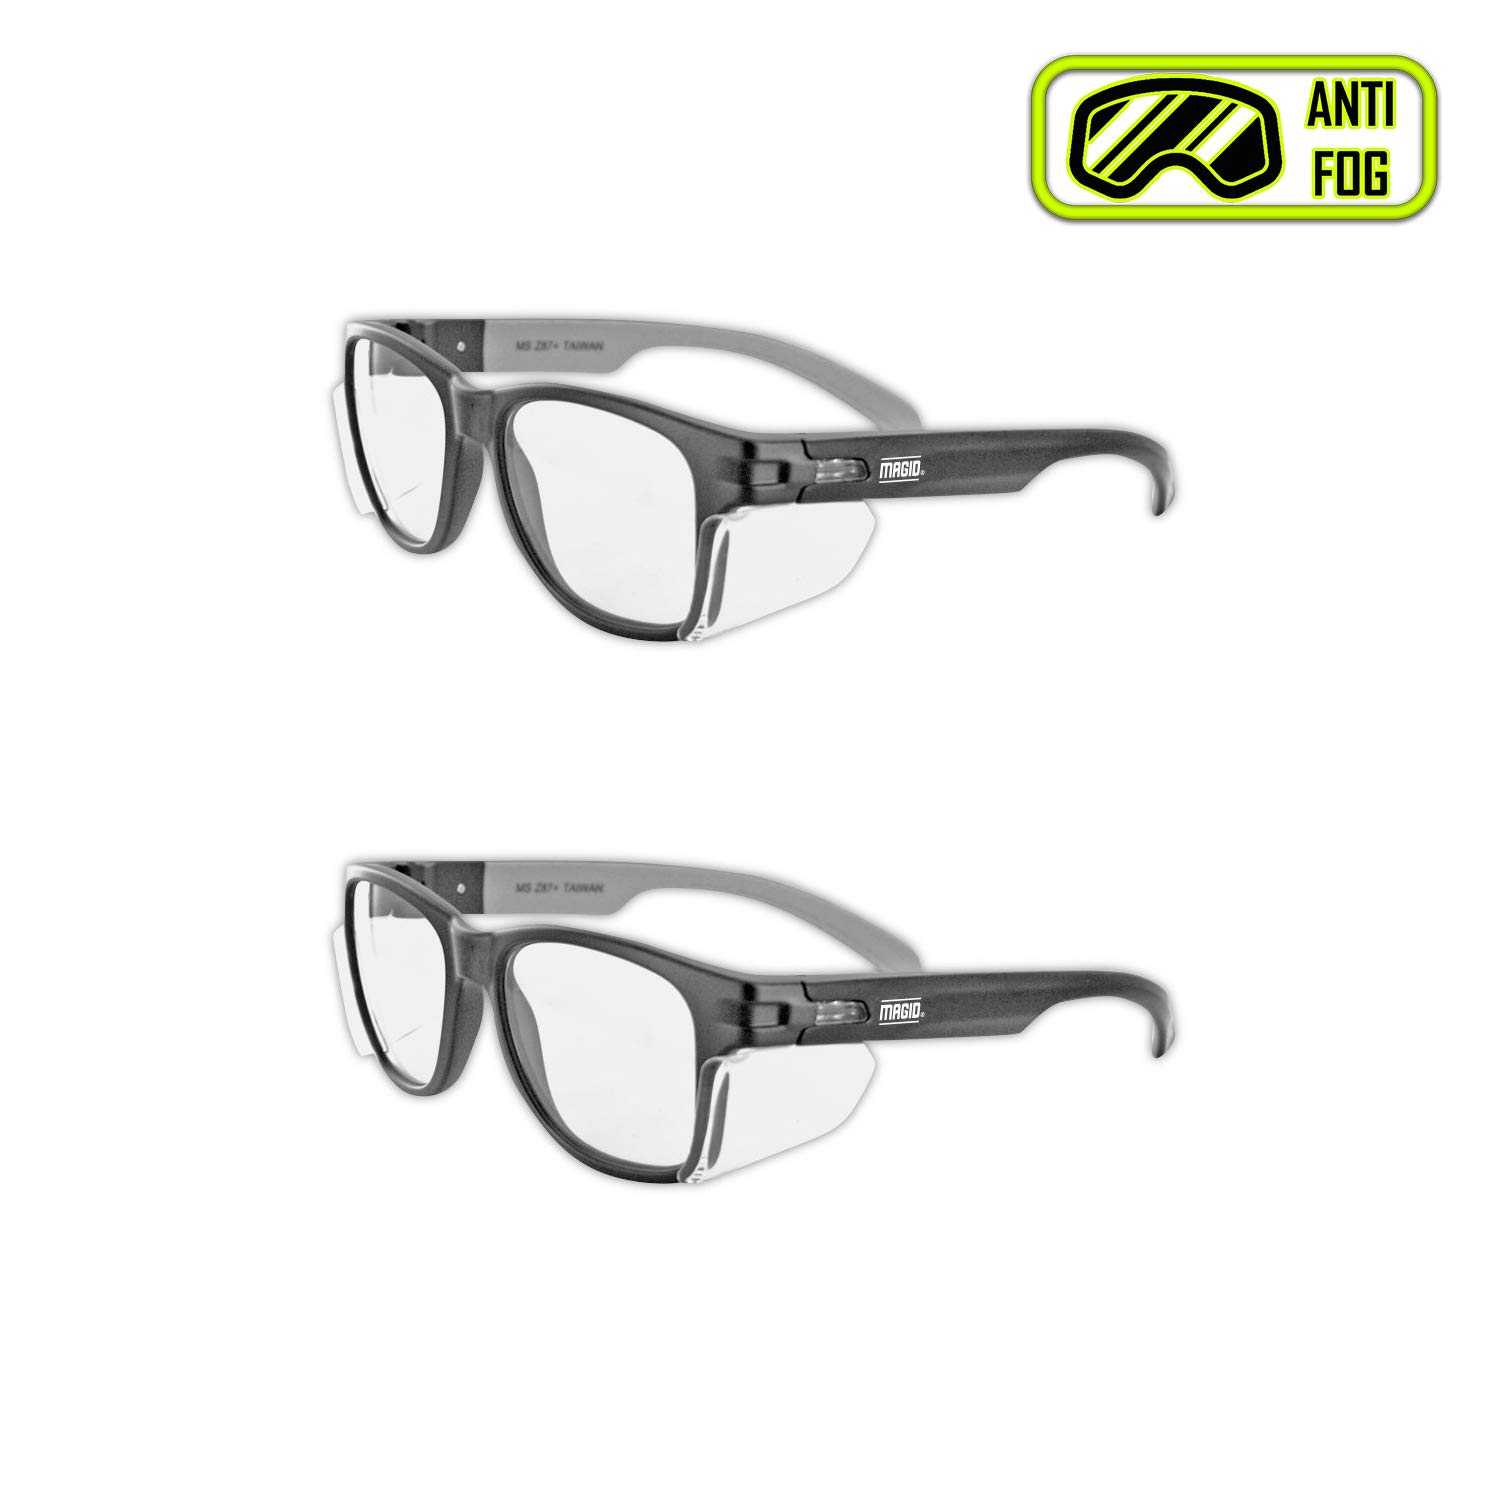 MAGID Y50BKAFC Iconic Y50 Design Series Safety Glasses with Side Shields | ANSI Z87+ Performance, Scratch & Fog Resistant, Comfortable & Stylish, Cloth Case Included, Clear Lens (2 Pair) by Magid Glove & Safety